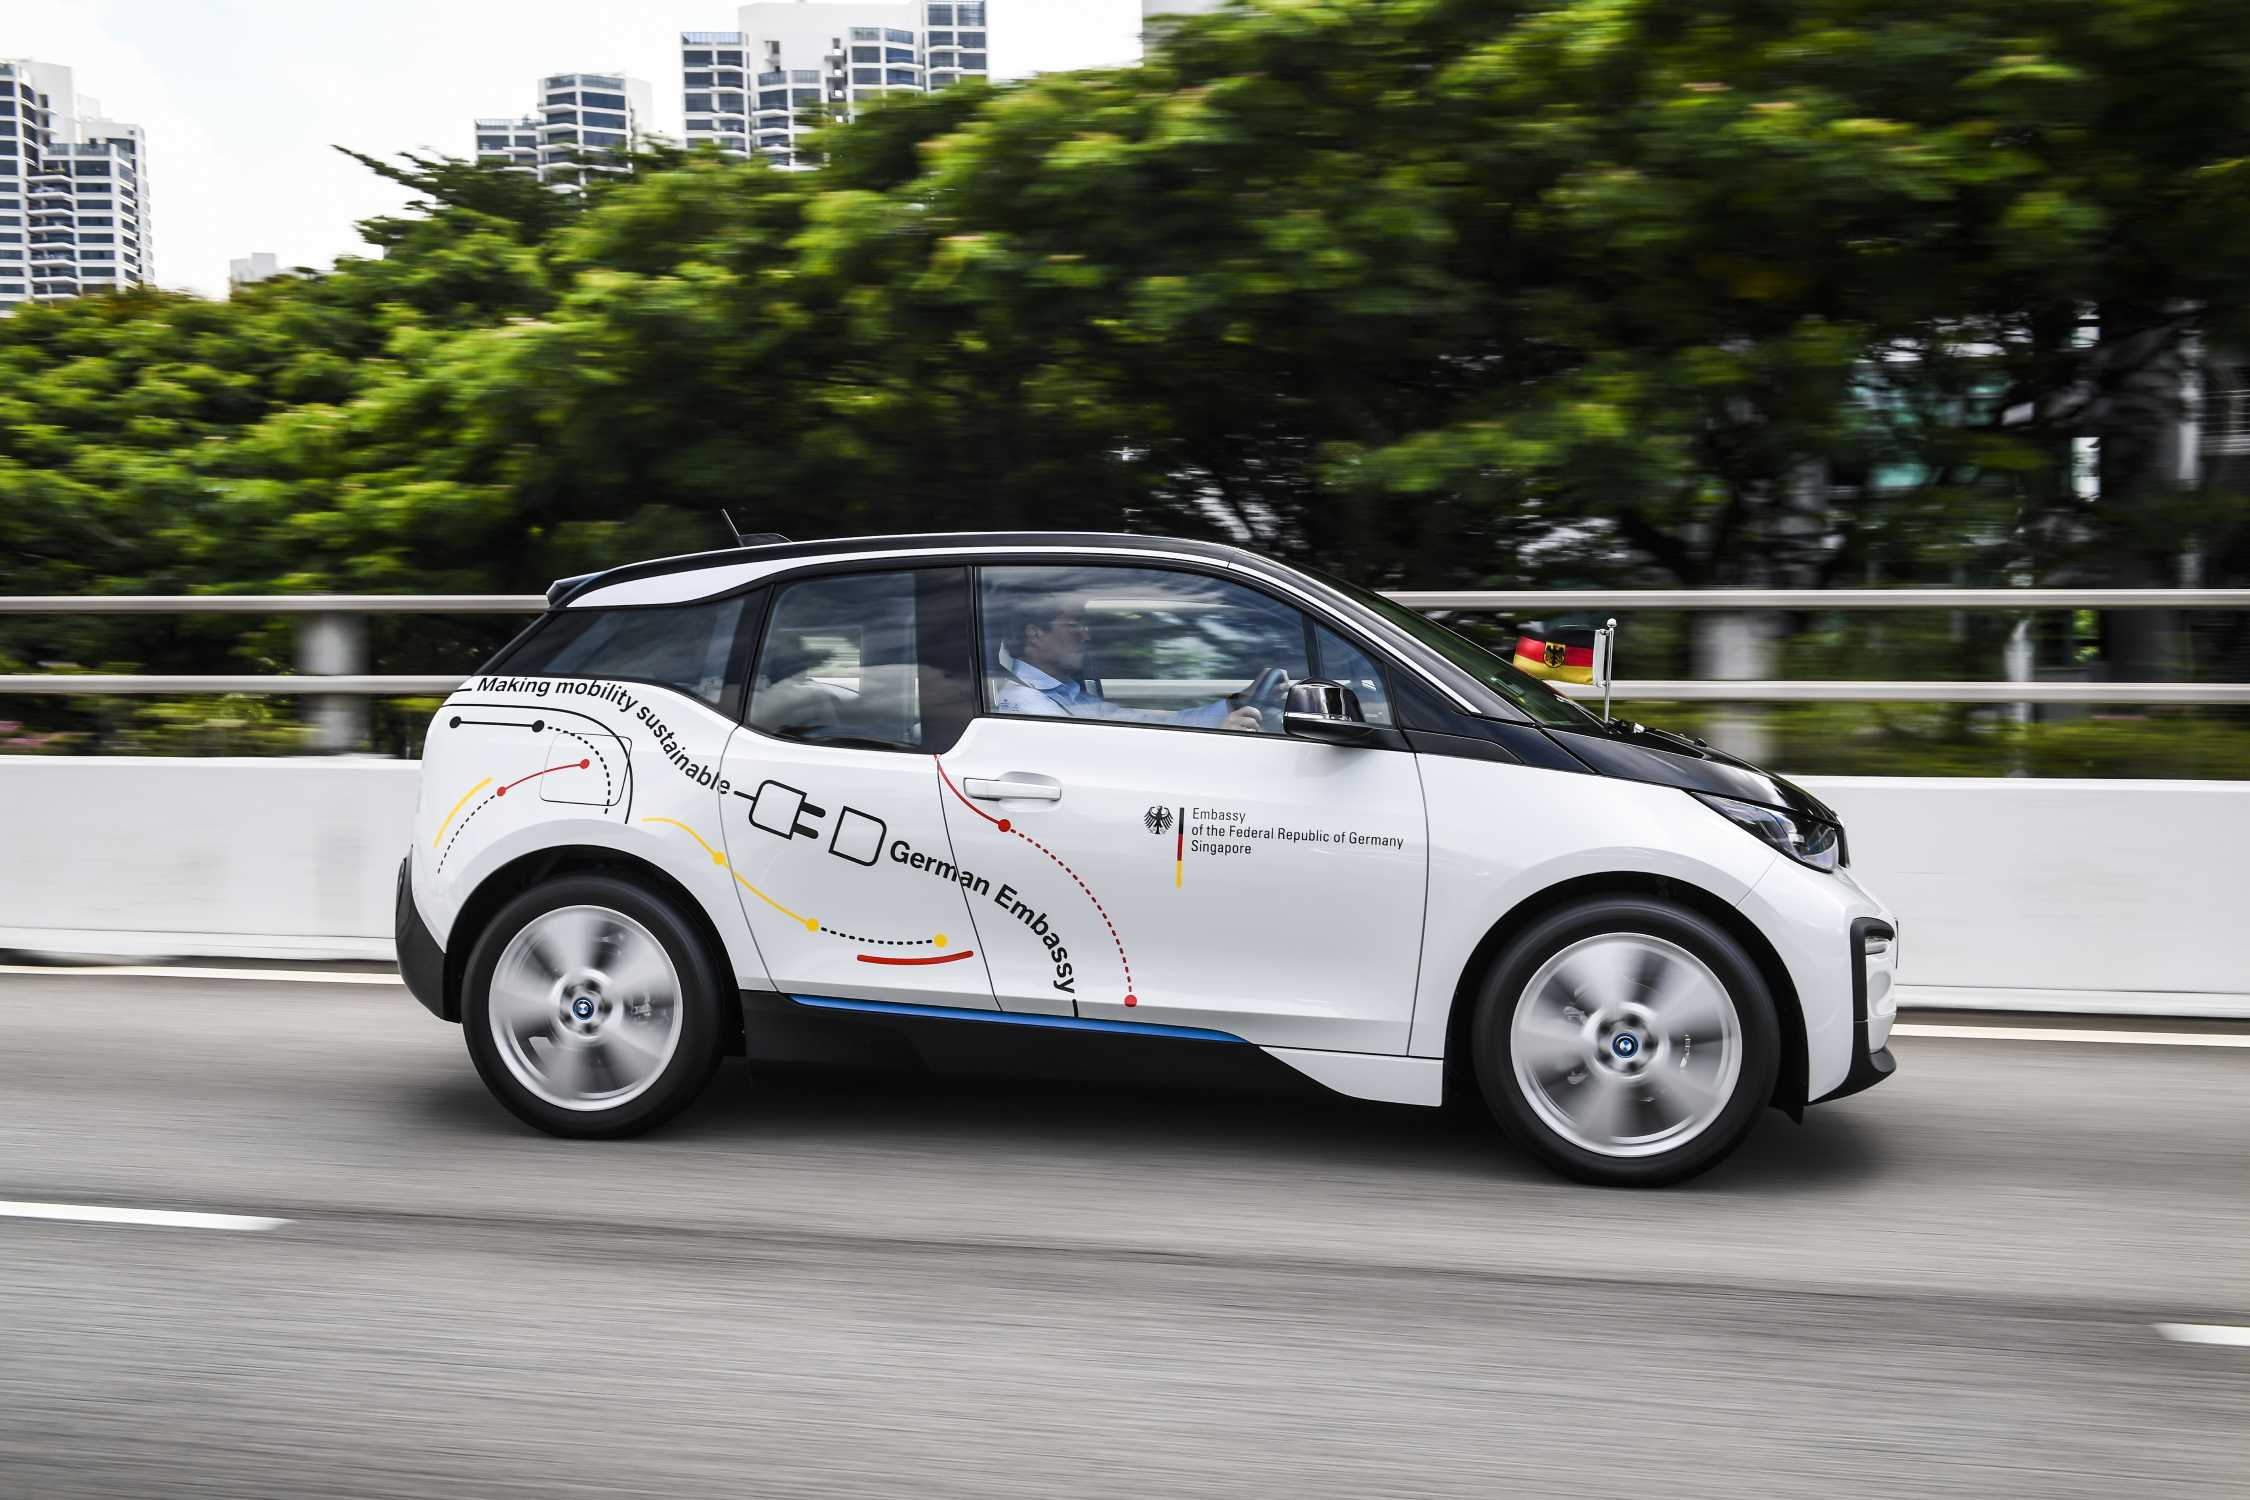 German Embassy In Singapore Is Making Mobility Sustainable With A